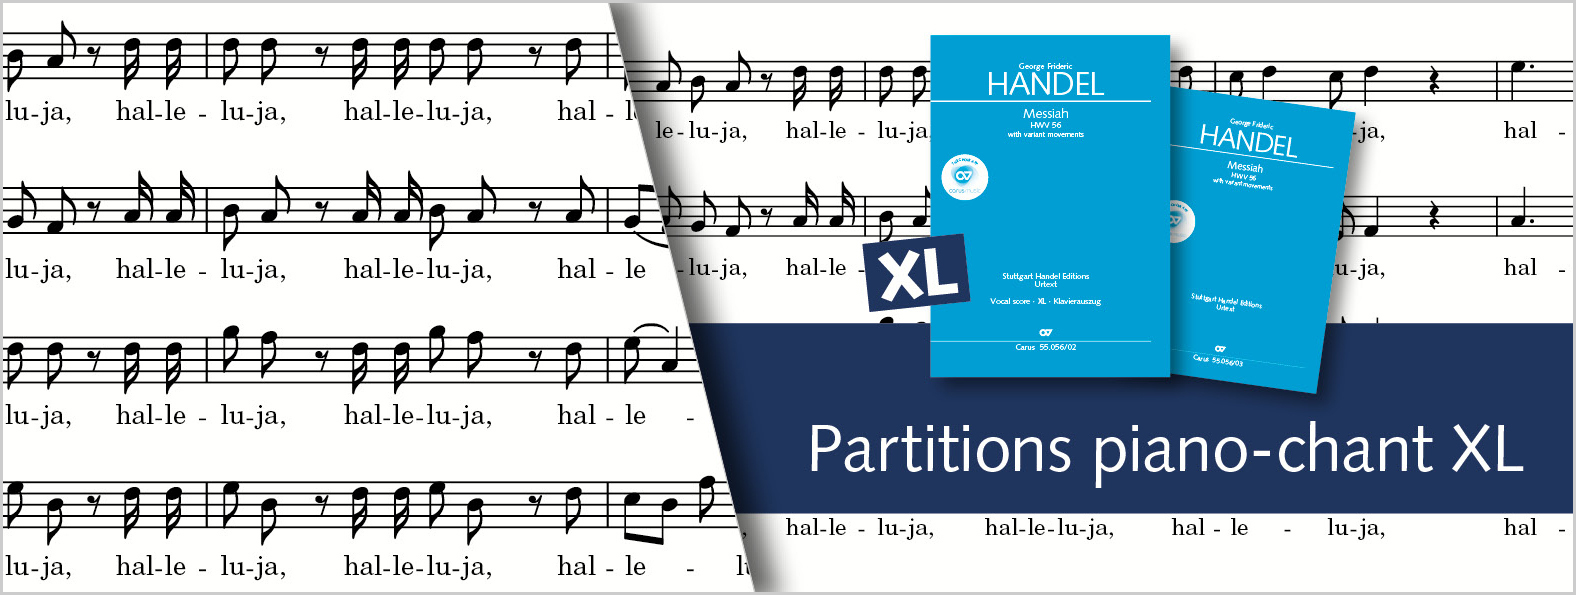 Partitions piano-chant XL